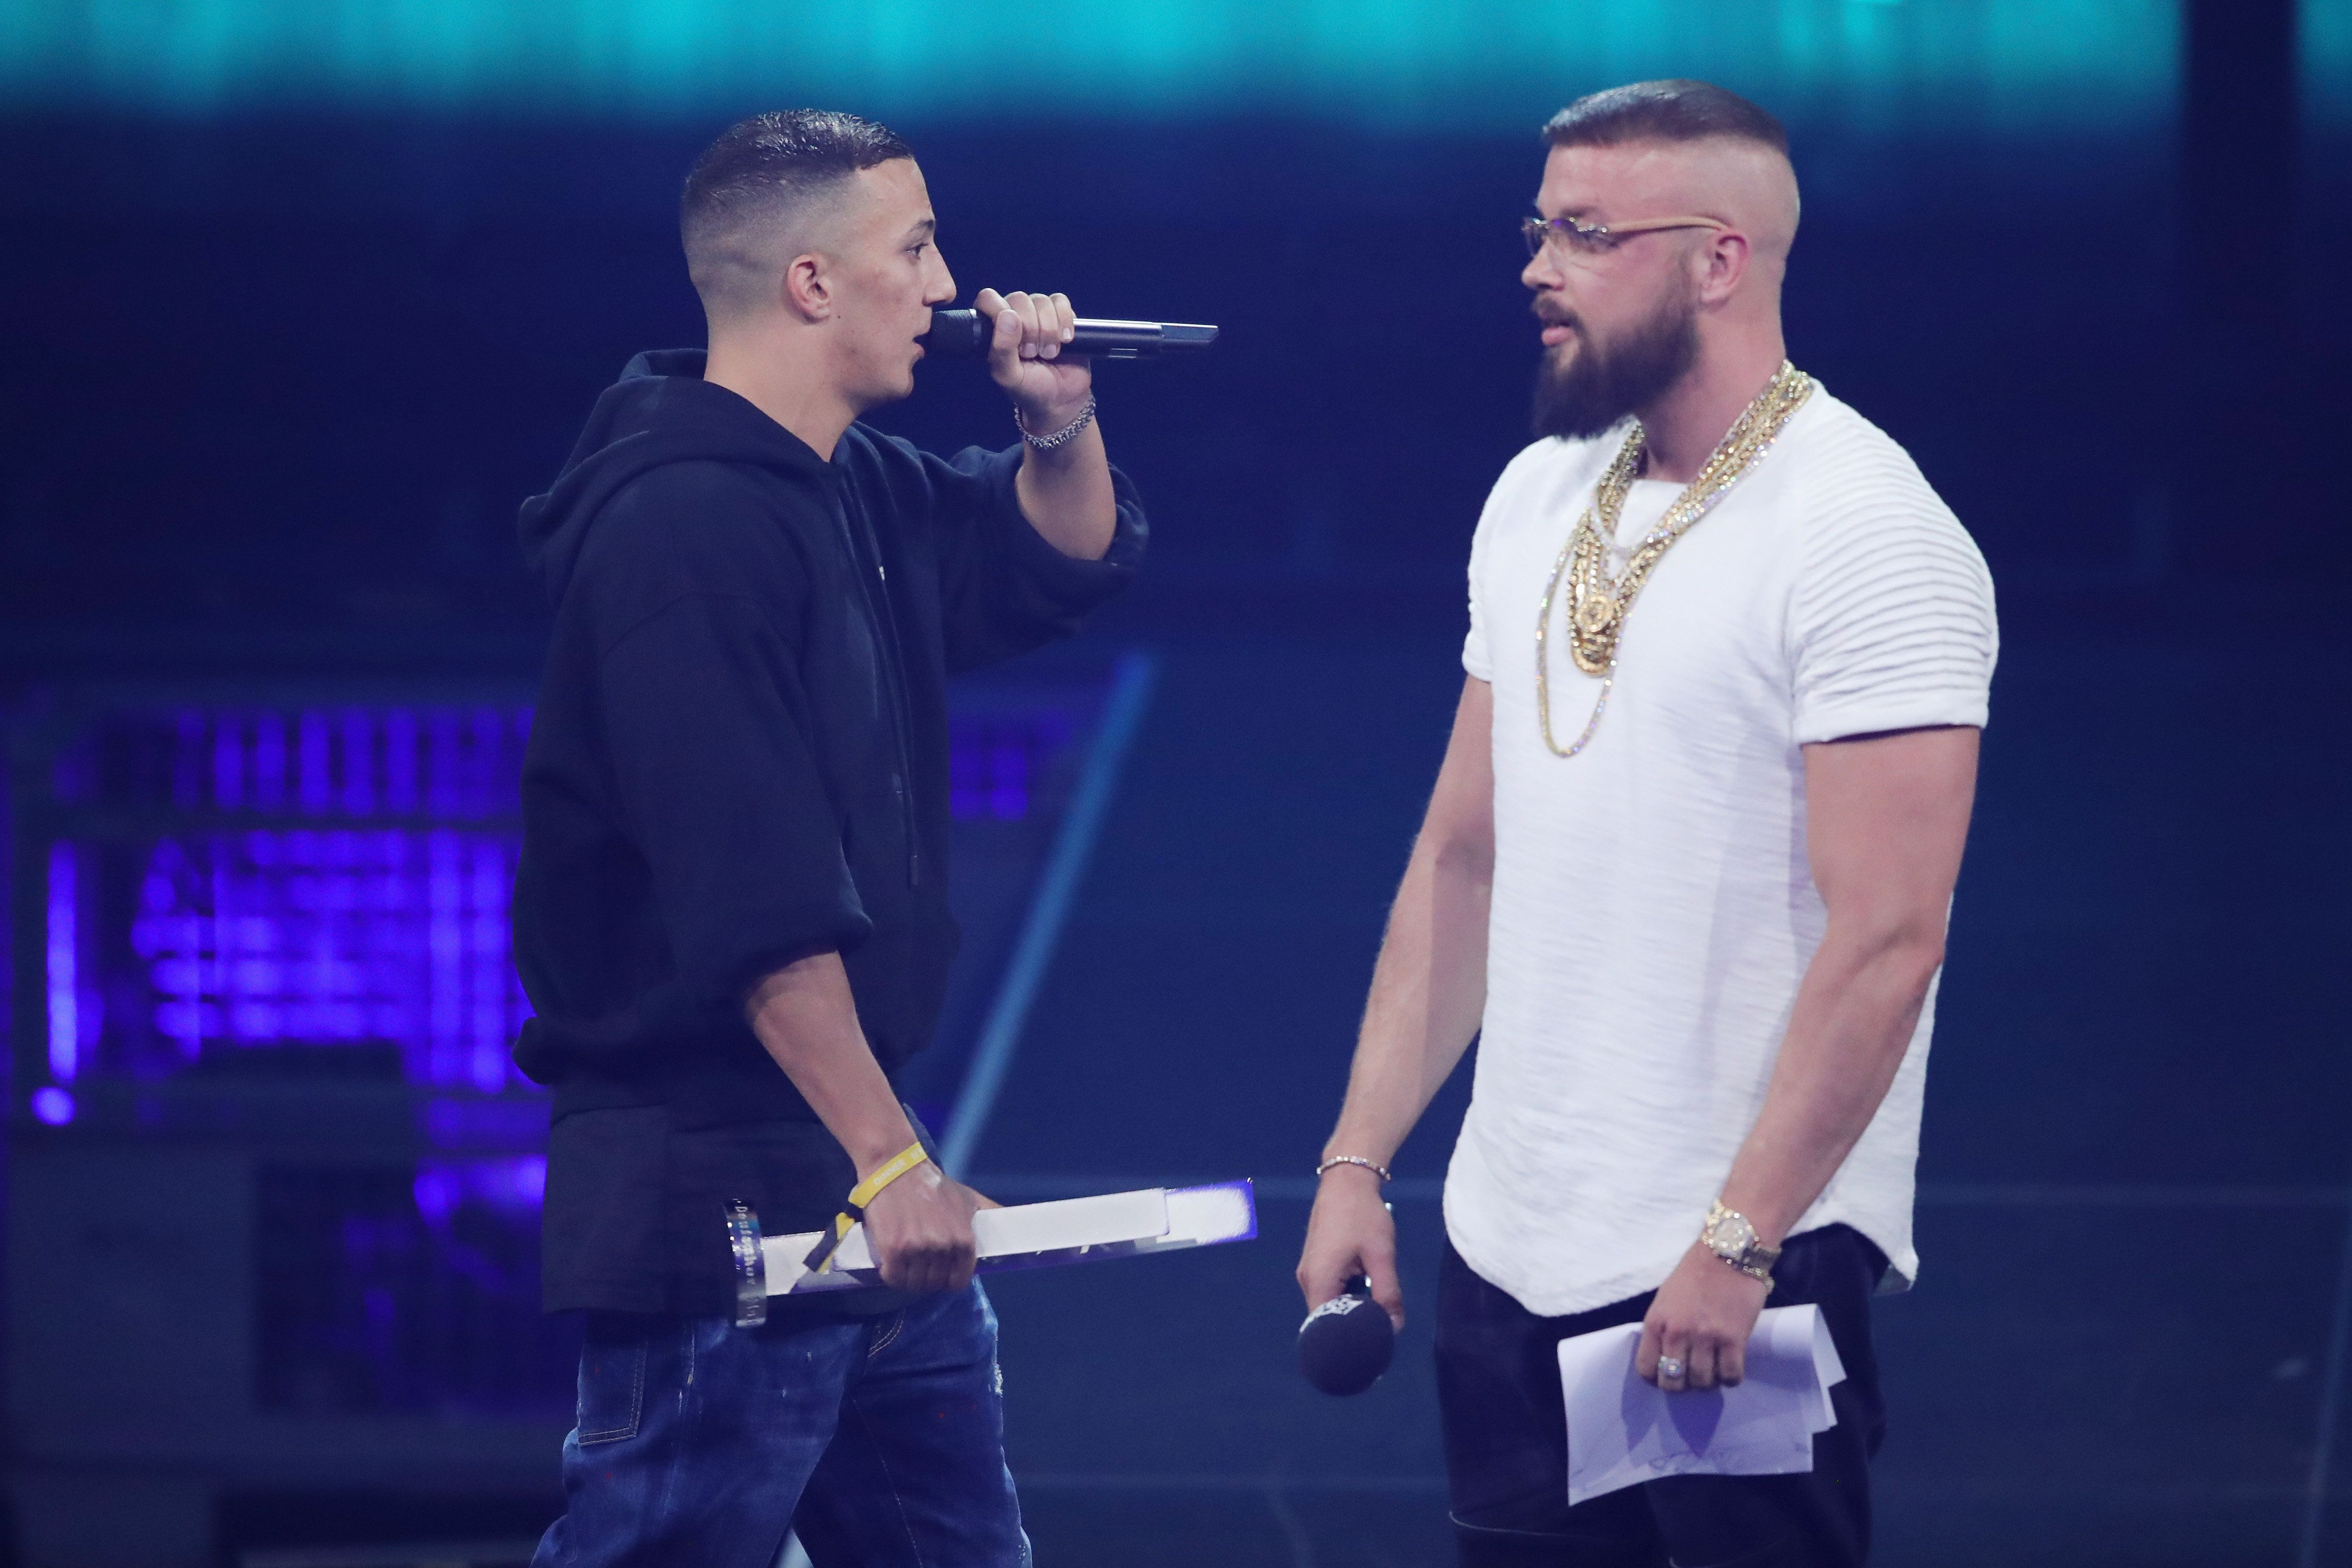 BERLIN, GERMANY - APRIL 12:  'Hip-Hop/Urban - National' award winners Farid Bang and Kollegah speak on stage during the Echo Award show at Messe Berlin on April 12, 2018 in Berlin, Germany.  (Photo by Andreas Rentz/Getty Images)